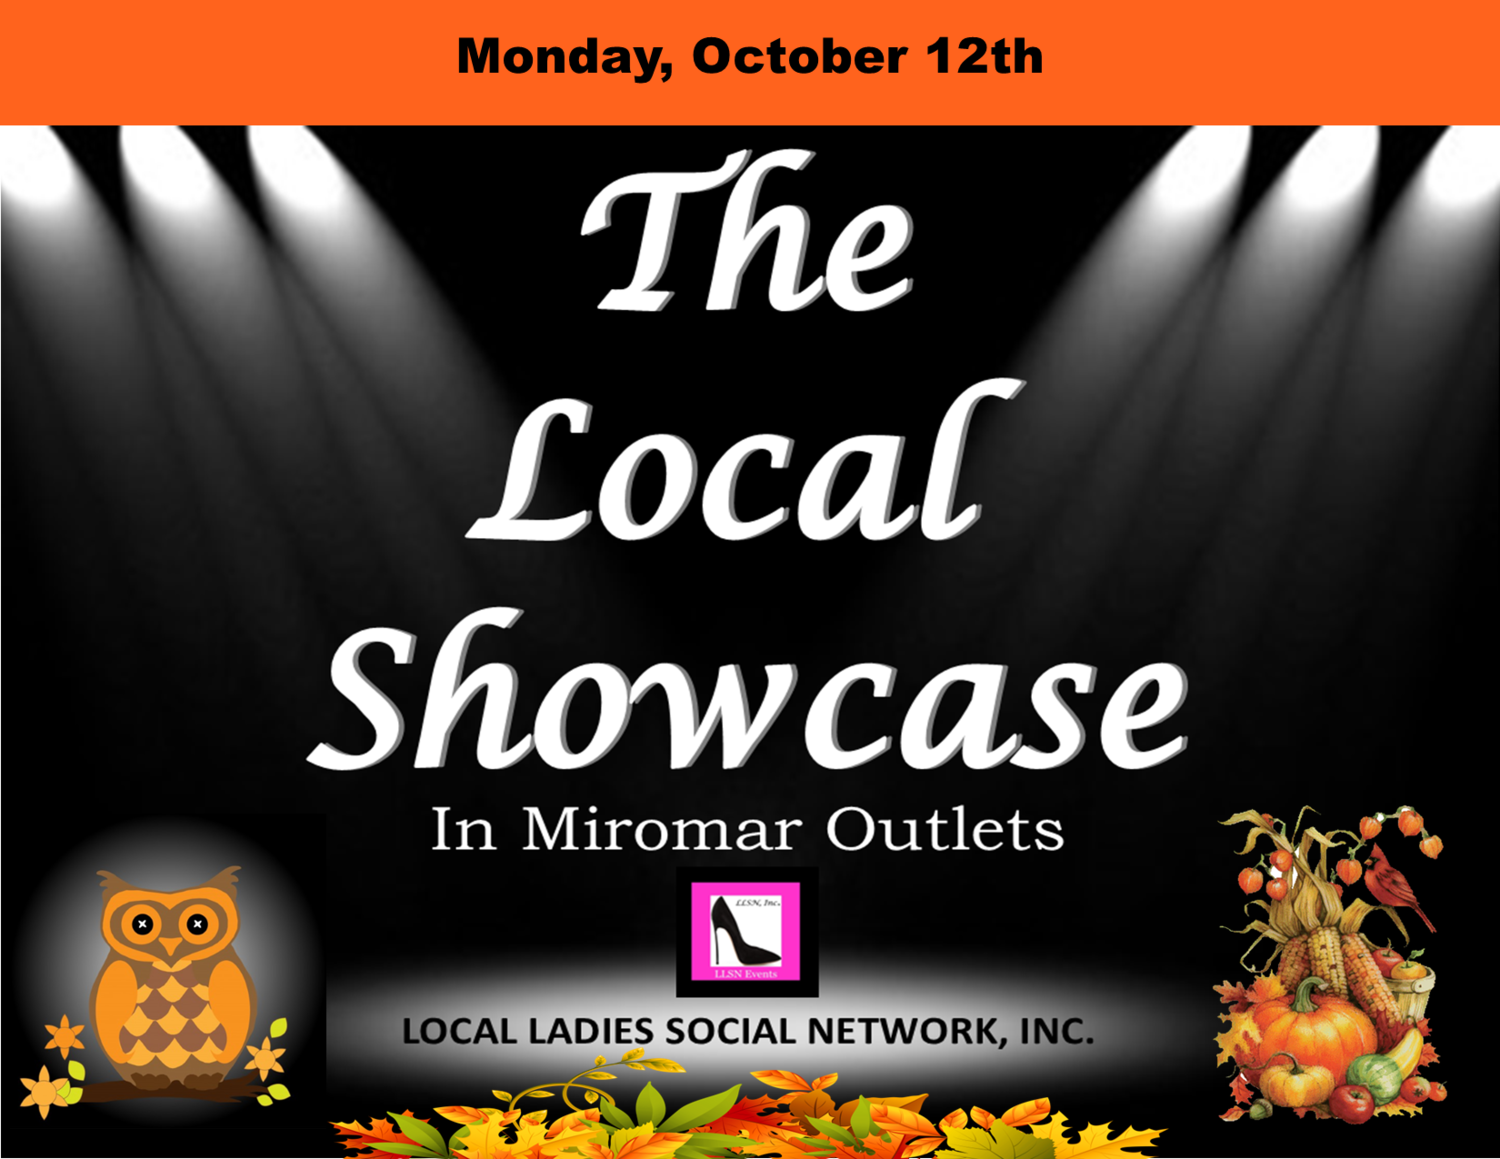 Monday, October 12th, 11am-7pm.